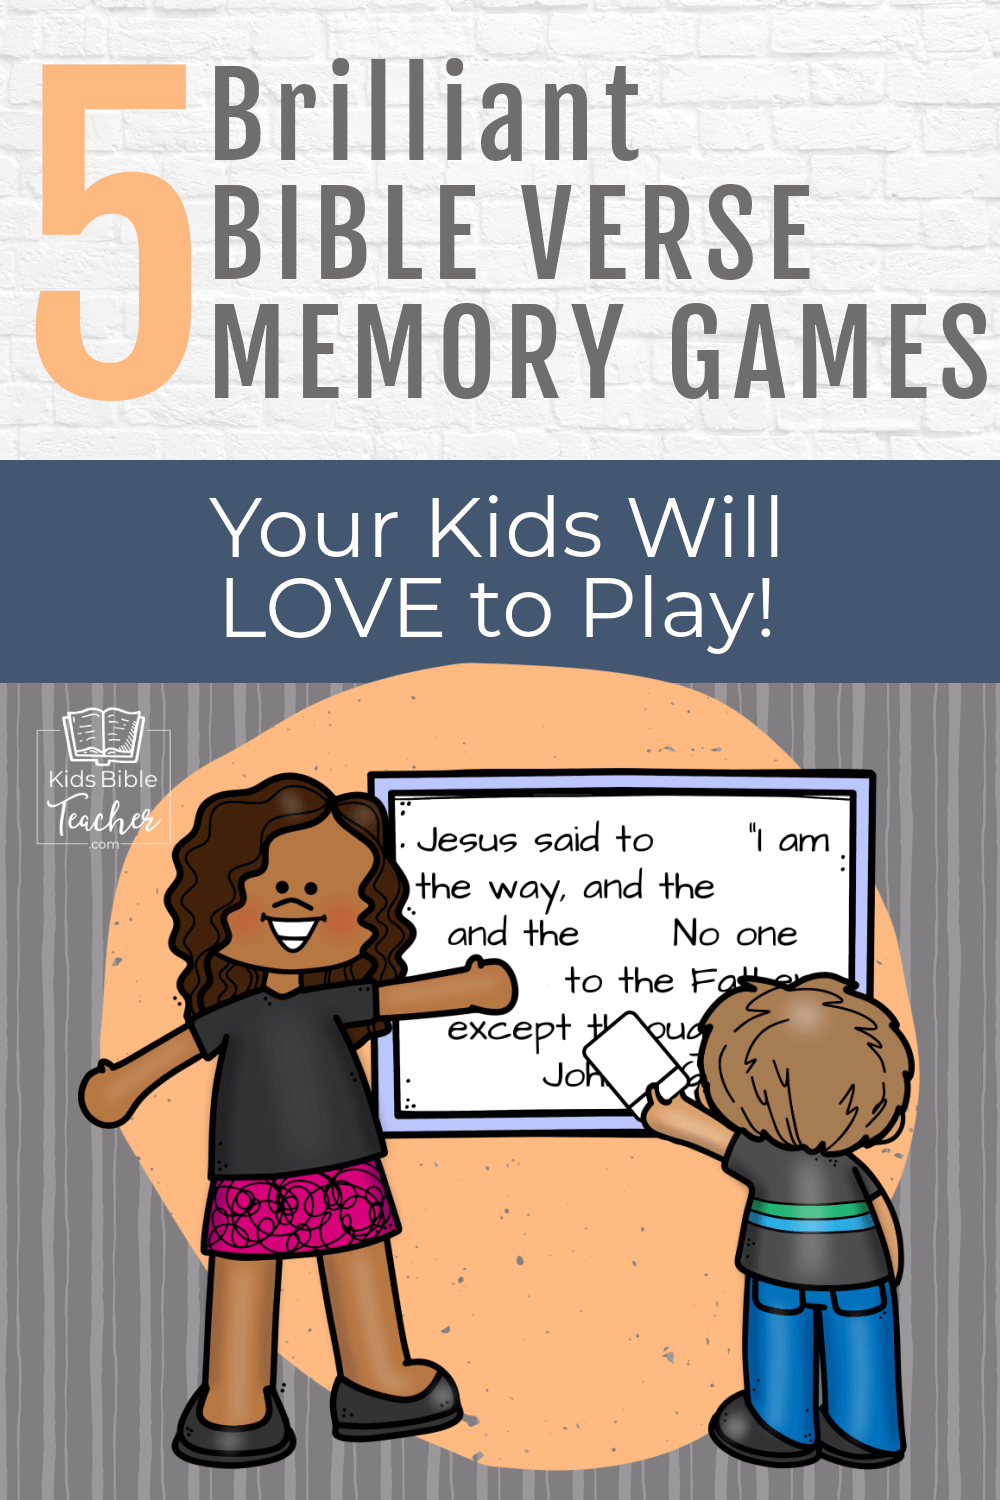 Help your kids memorize Bible verses with these Brilliant Bible Verse Memory Games that your kids will BEG to play again and again!